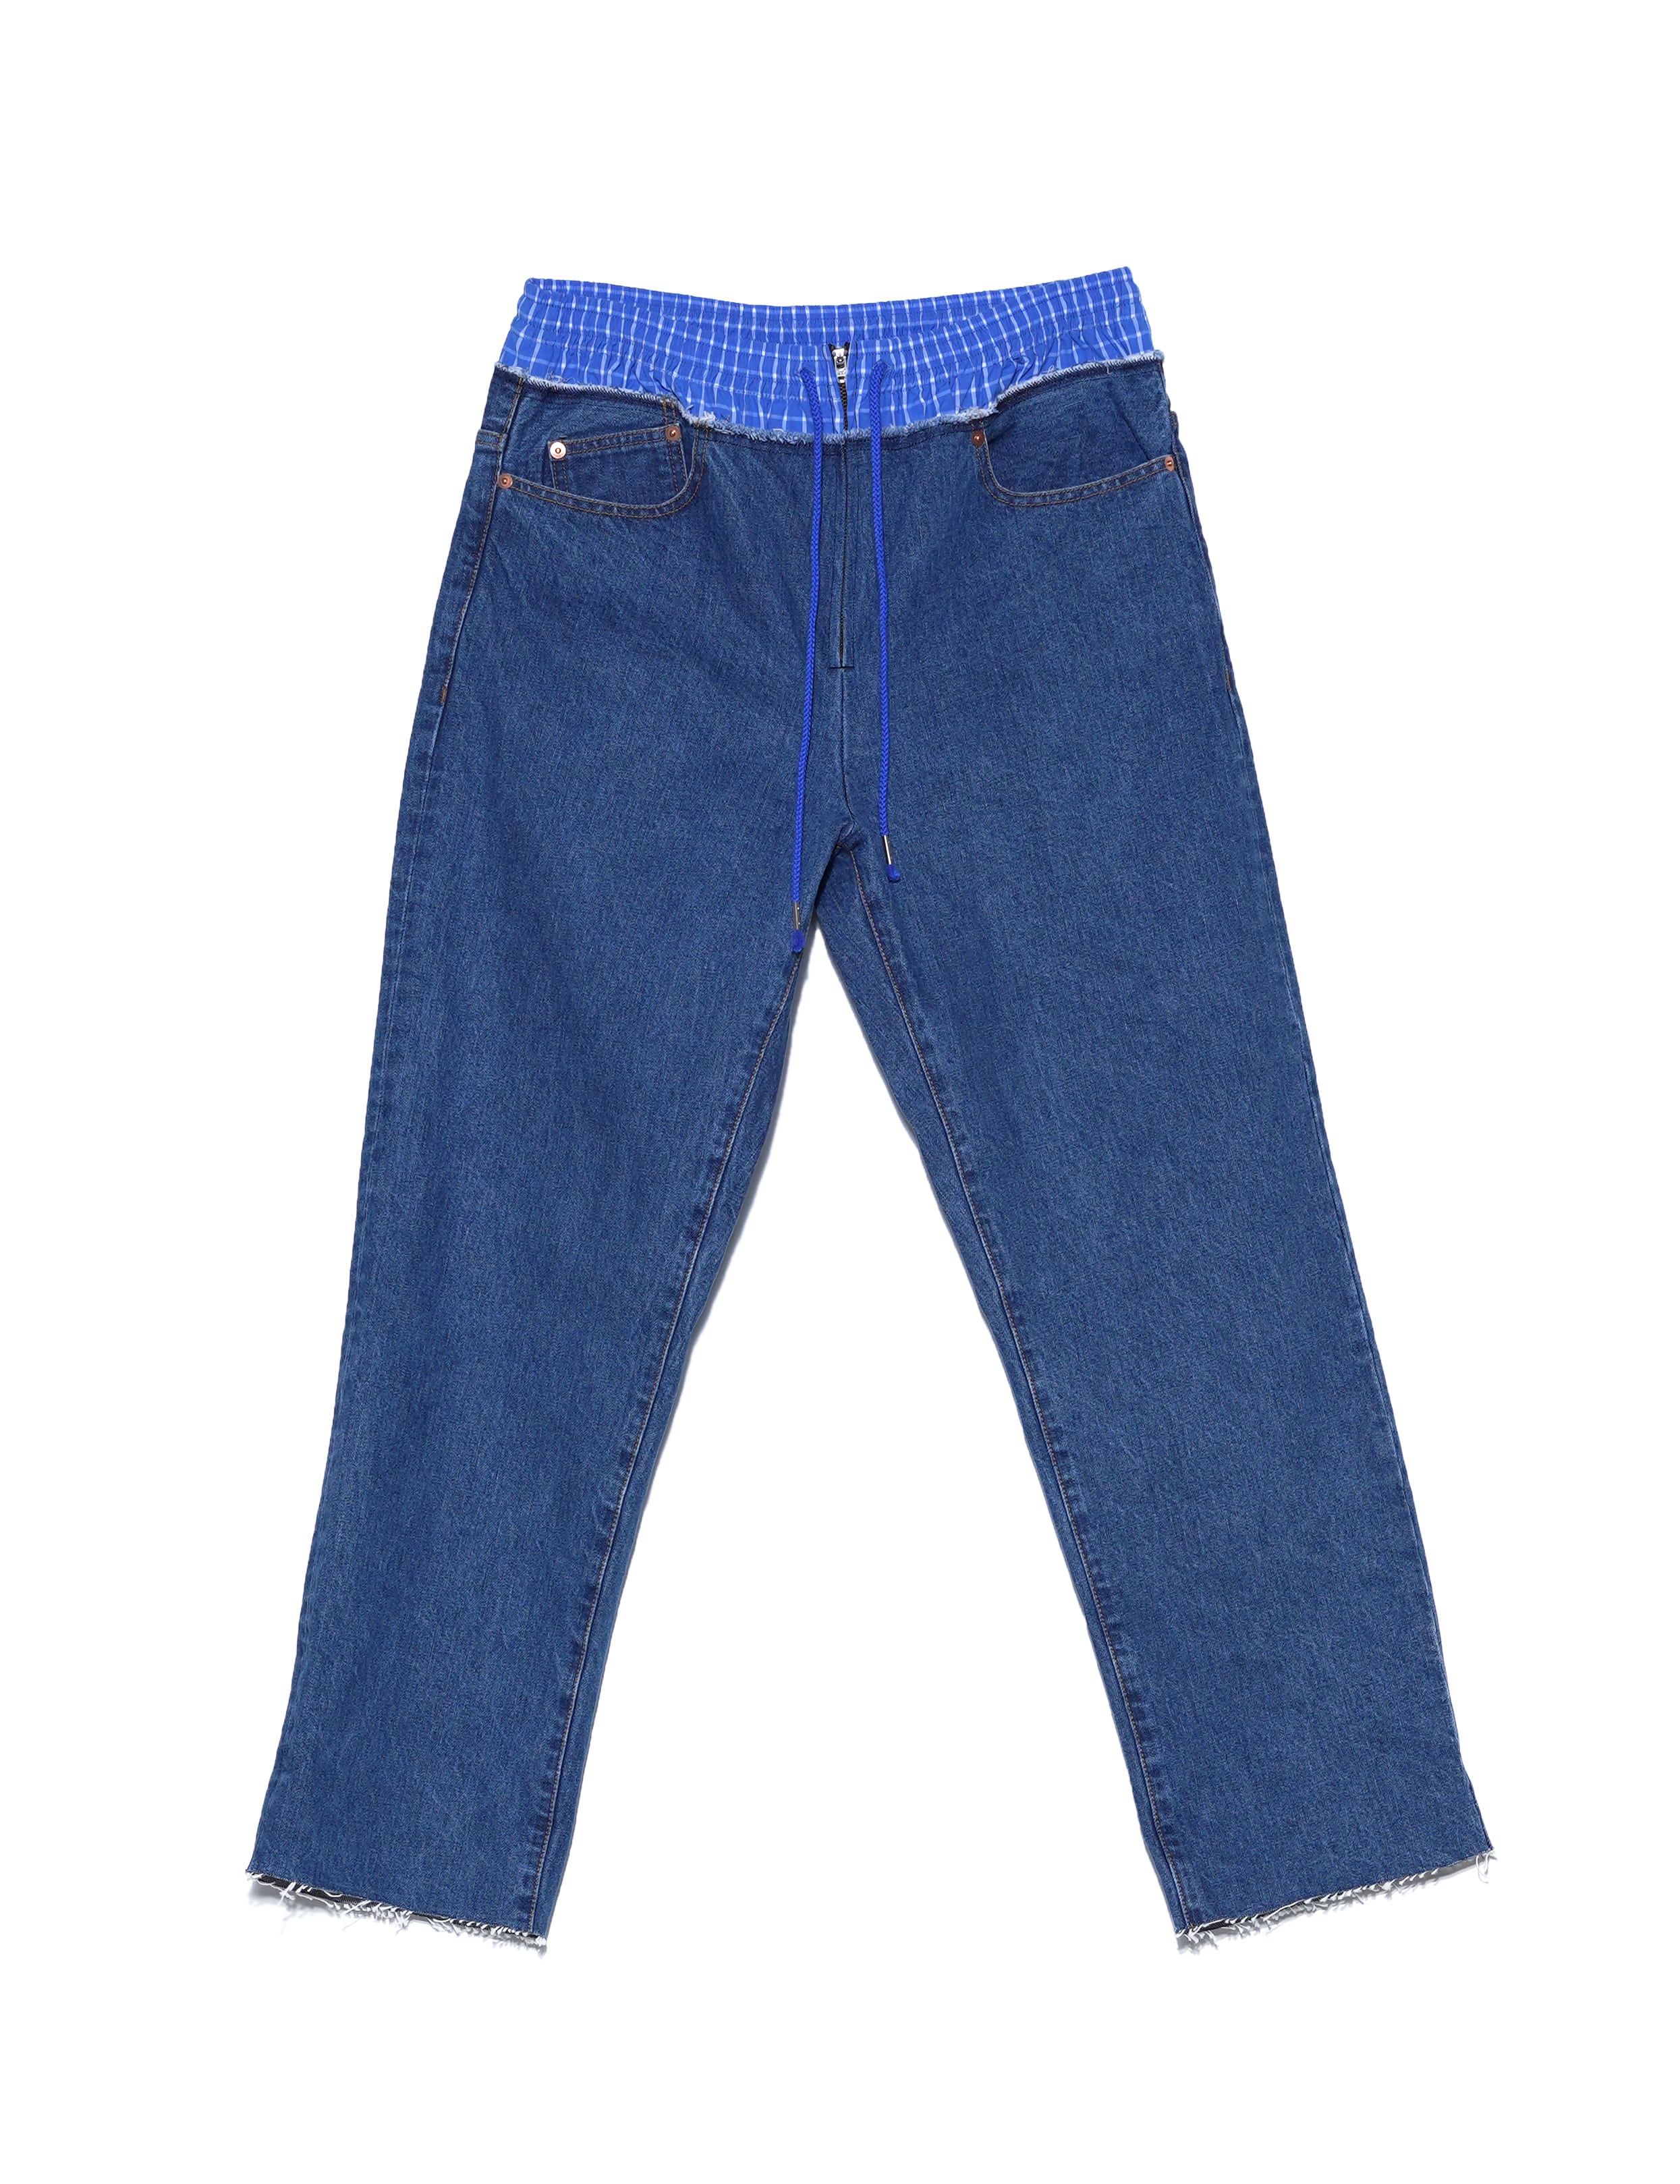 FAKE LAYERED WAIST DENIM PANTS (INDIGO)